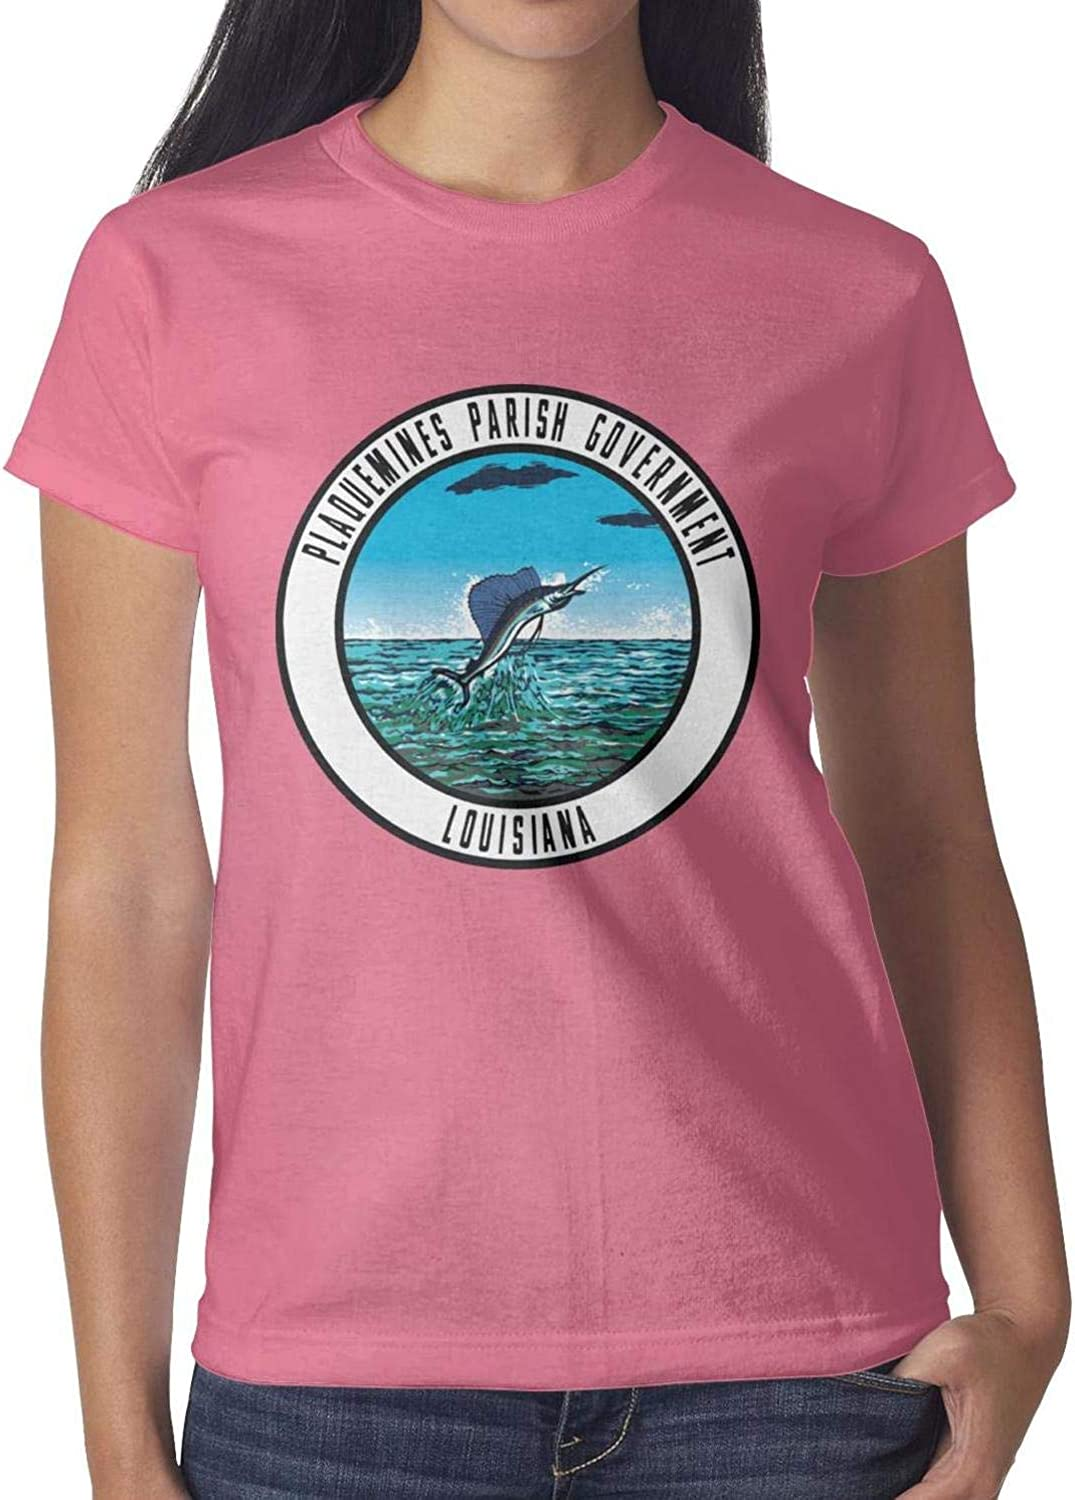 T-Shirt Casual Cable Plaquemines T Shirt Womens Clothing Cross Train